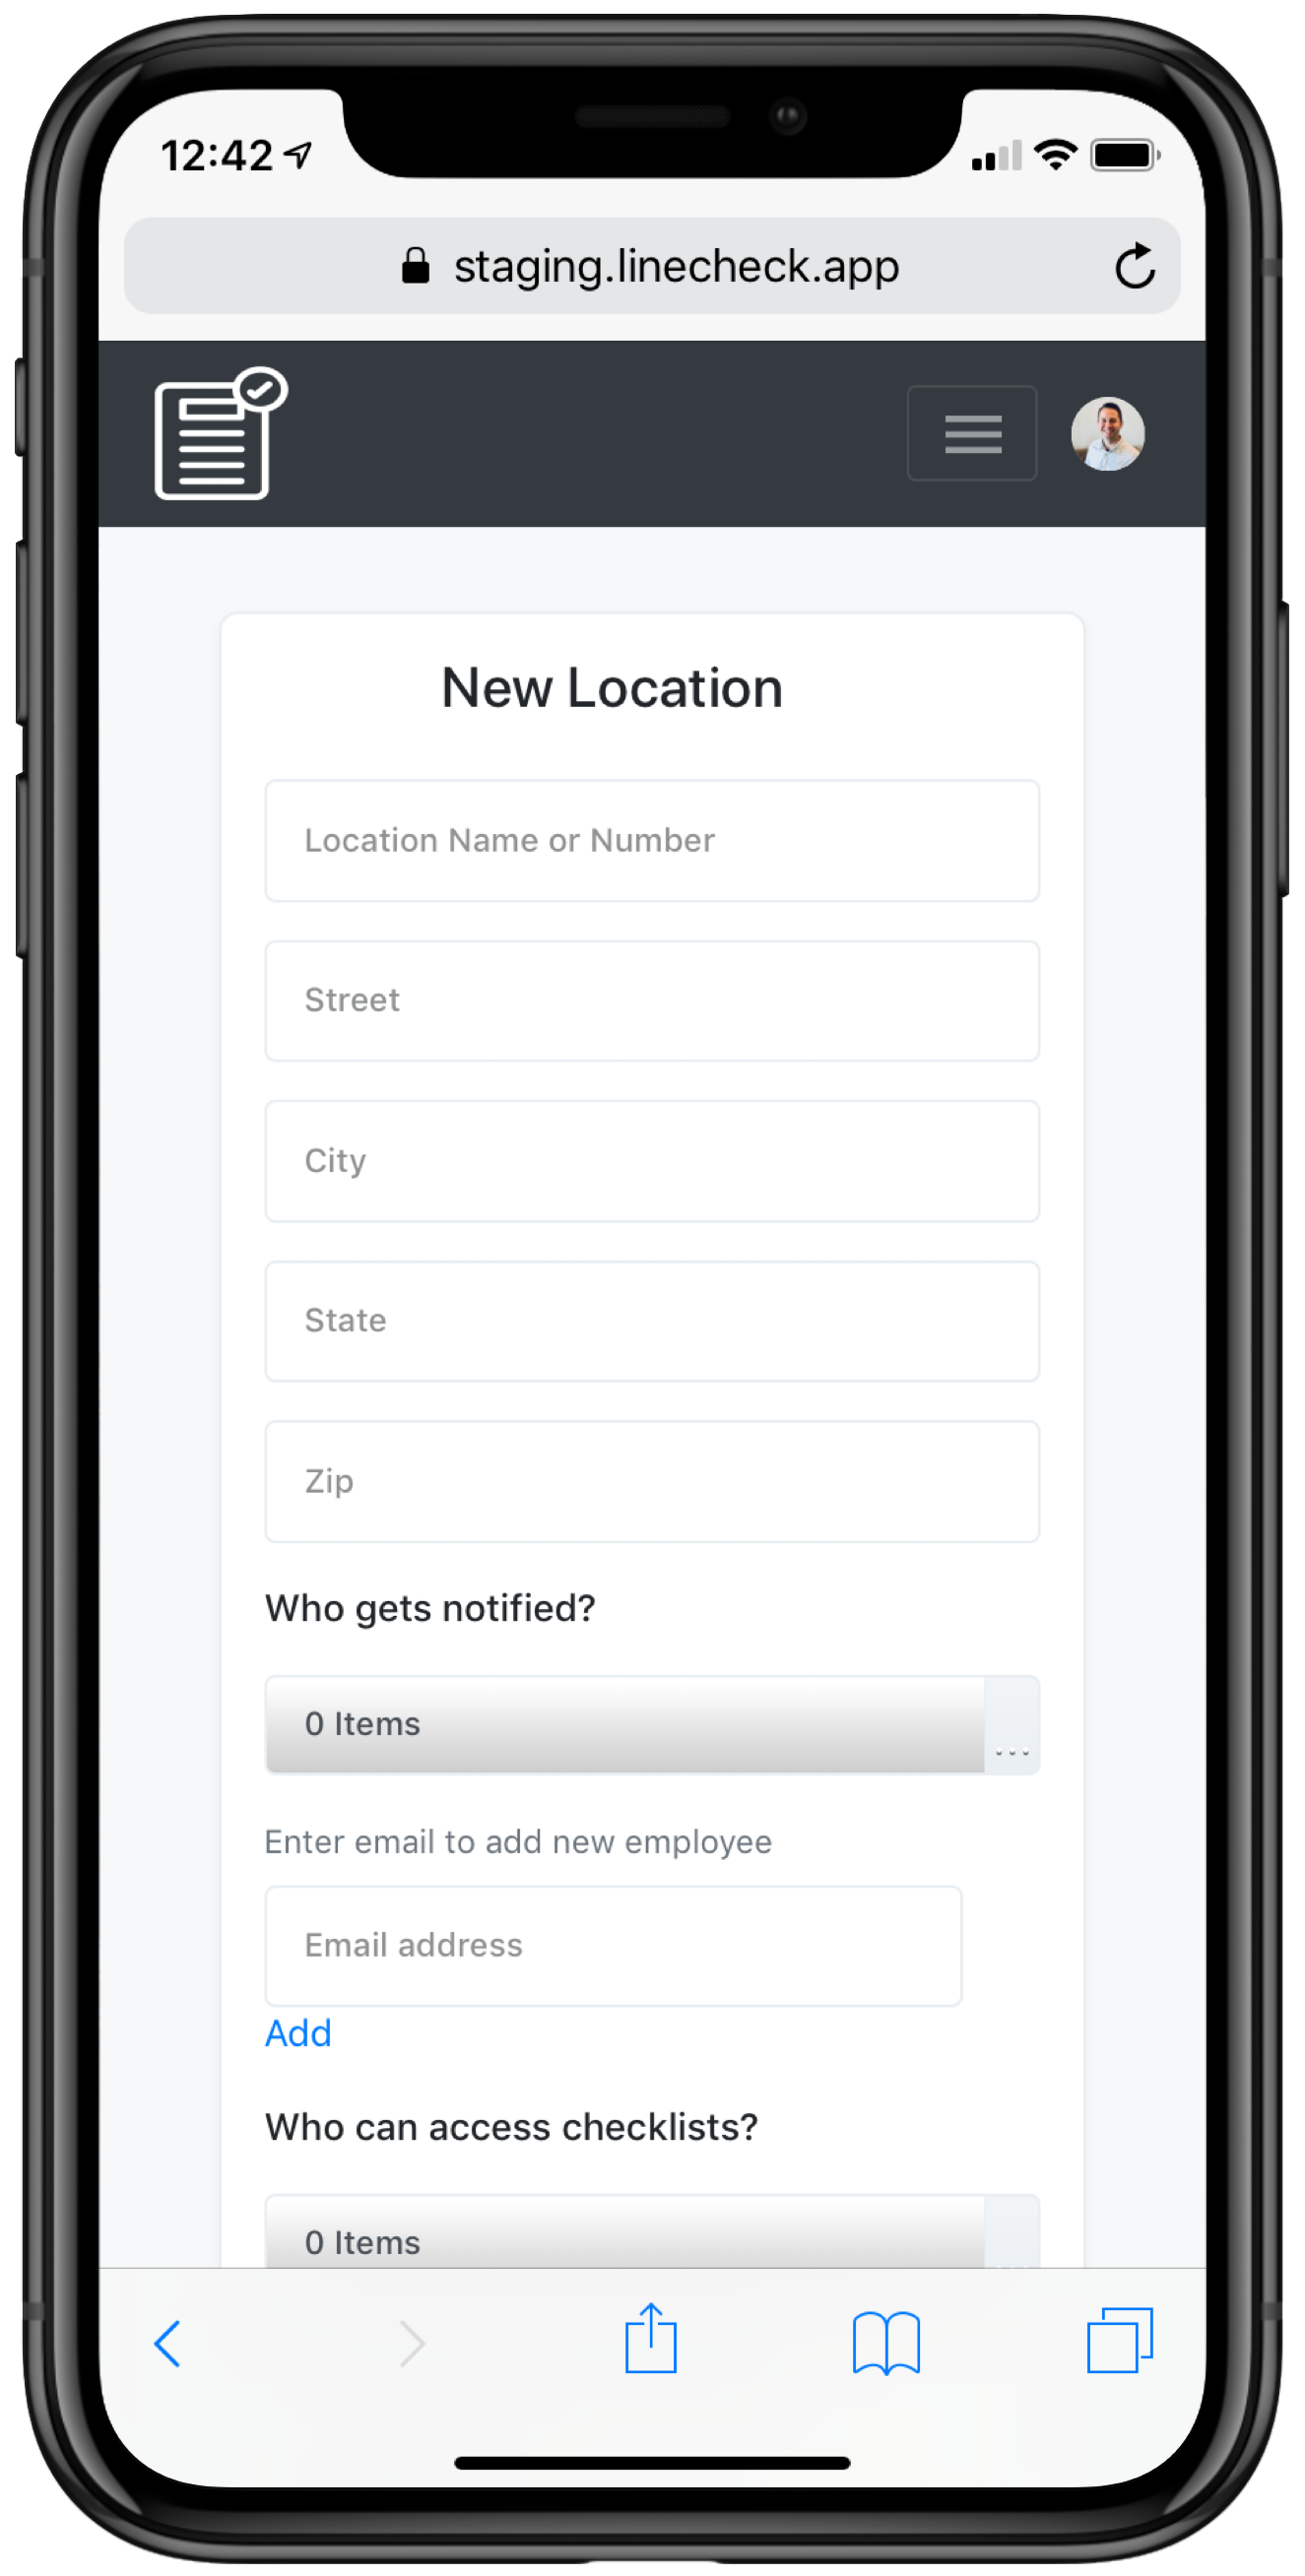 Assign who gets notified of checklist results. - If a checklist is not done on time, the right people know about it, so they can address it in real time. Plus, you can authorize access for multiple managers and employees at each restaurant.Schedule a demo.